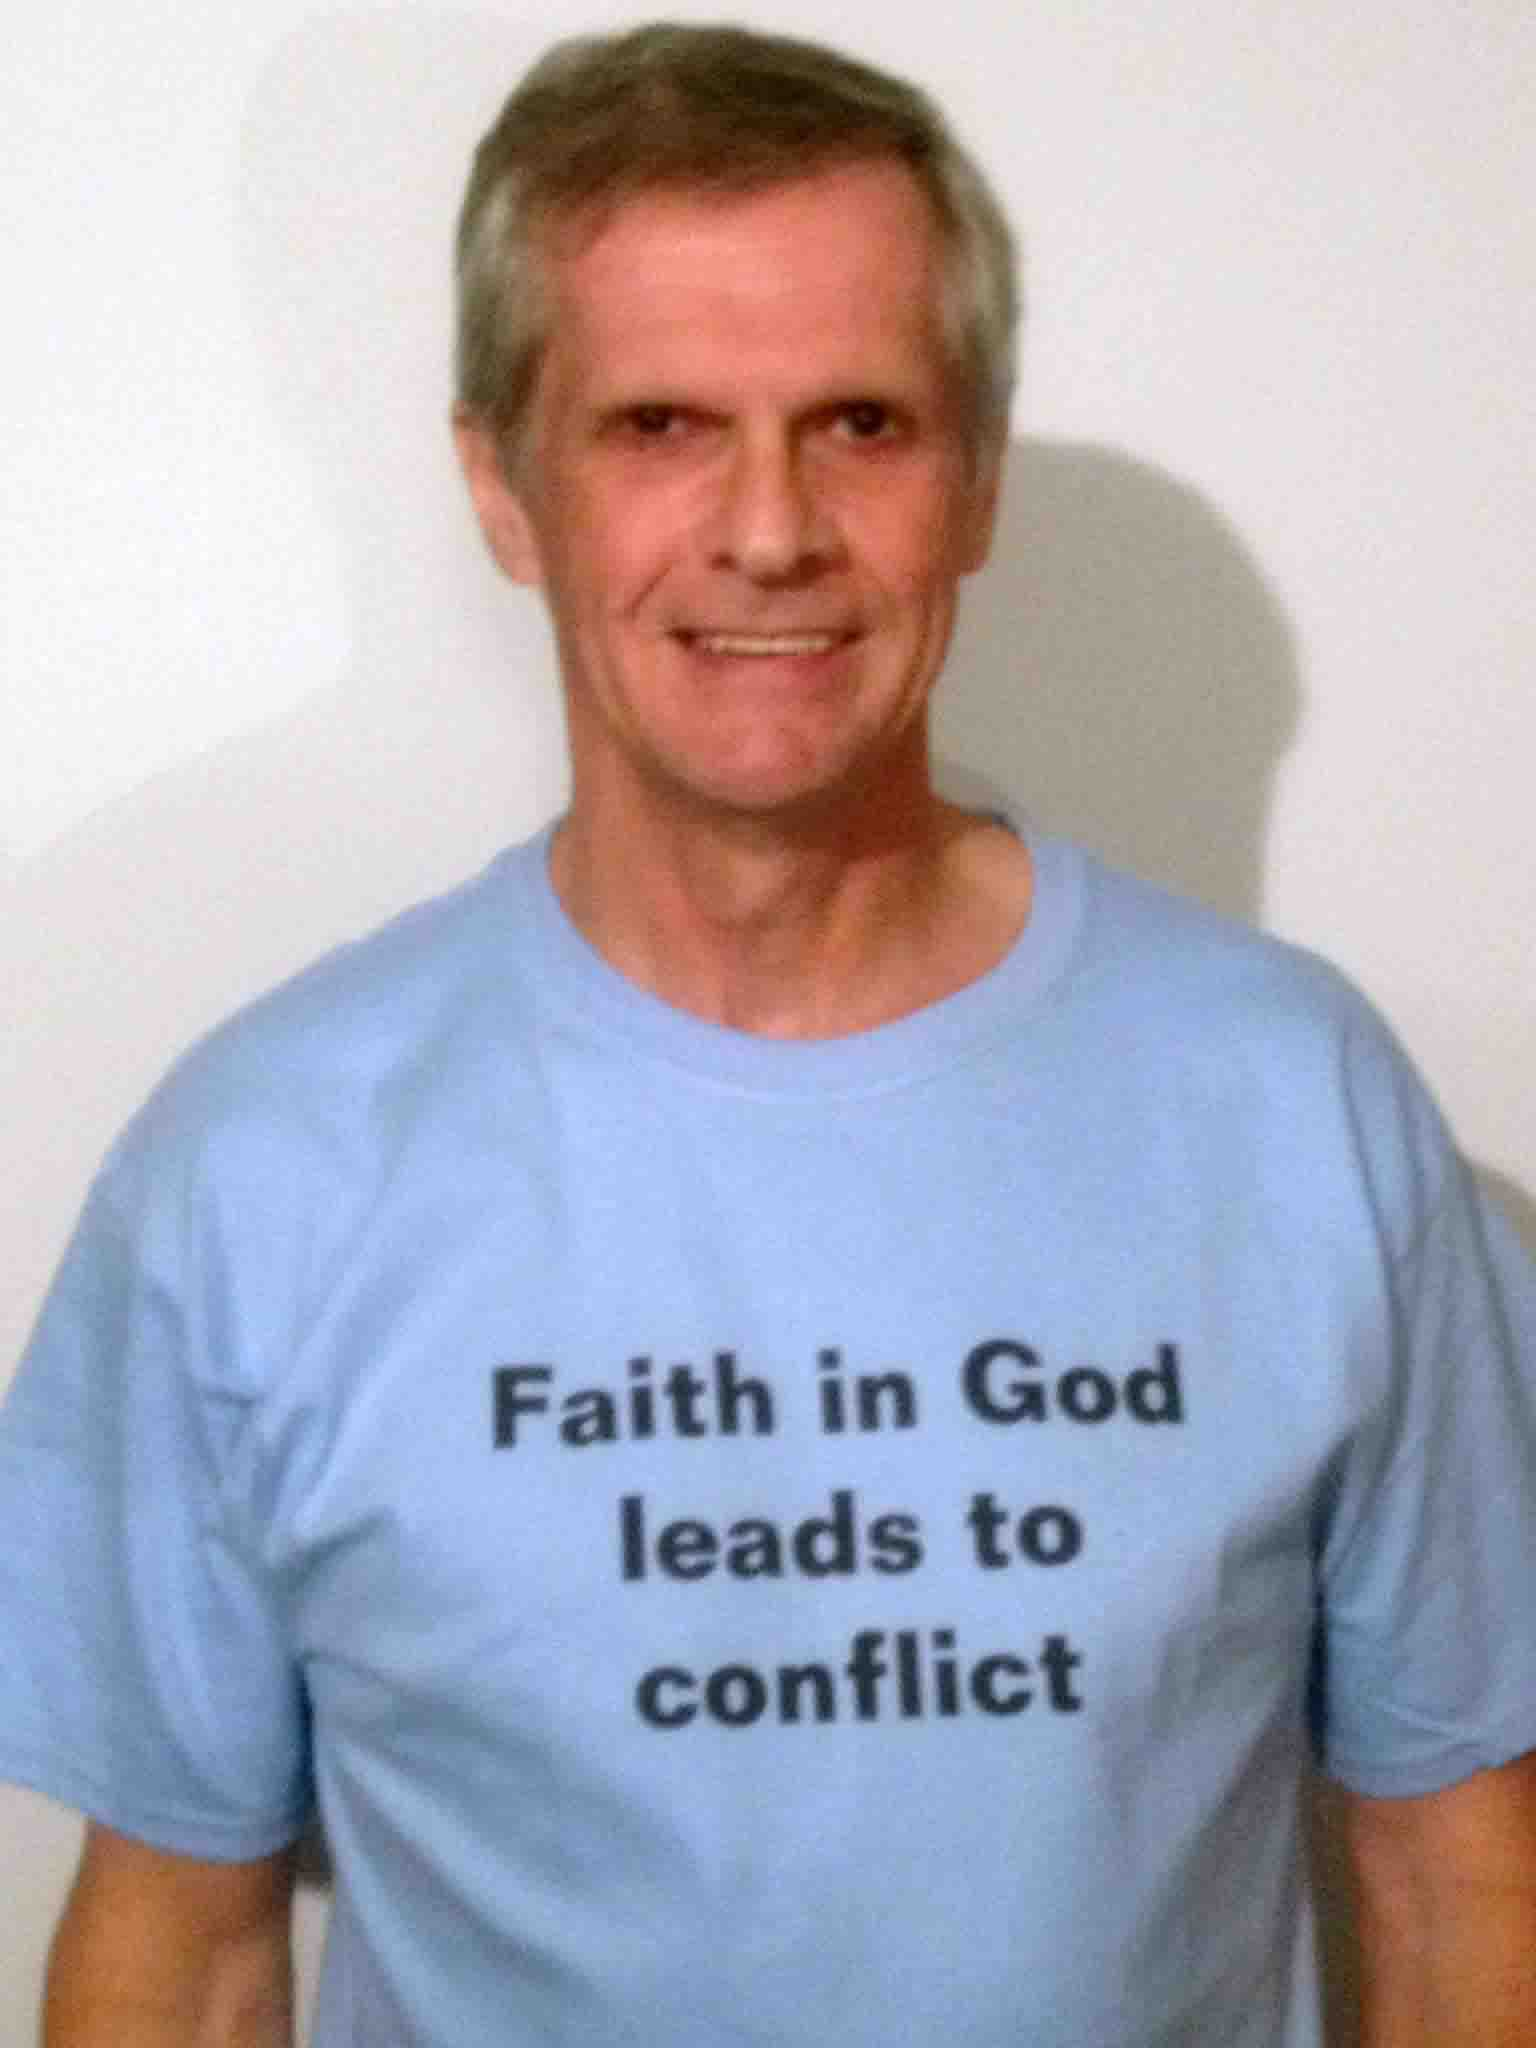 Darwin Bedford wearing his shirt that says 'Faith in God leads to conflict'